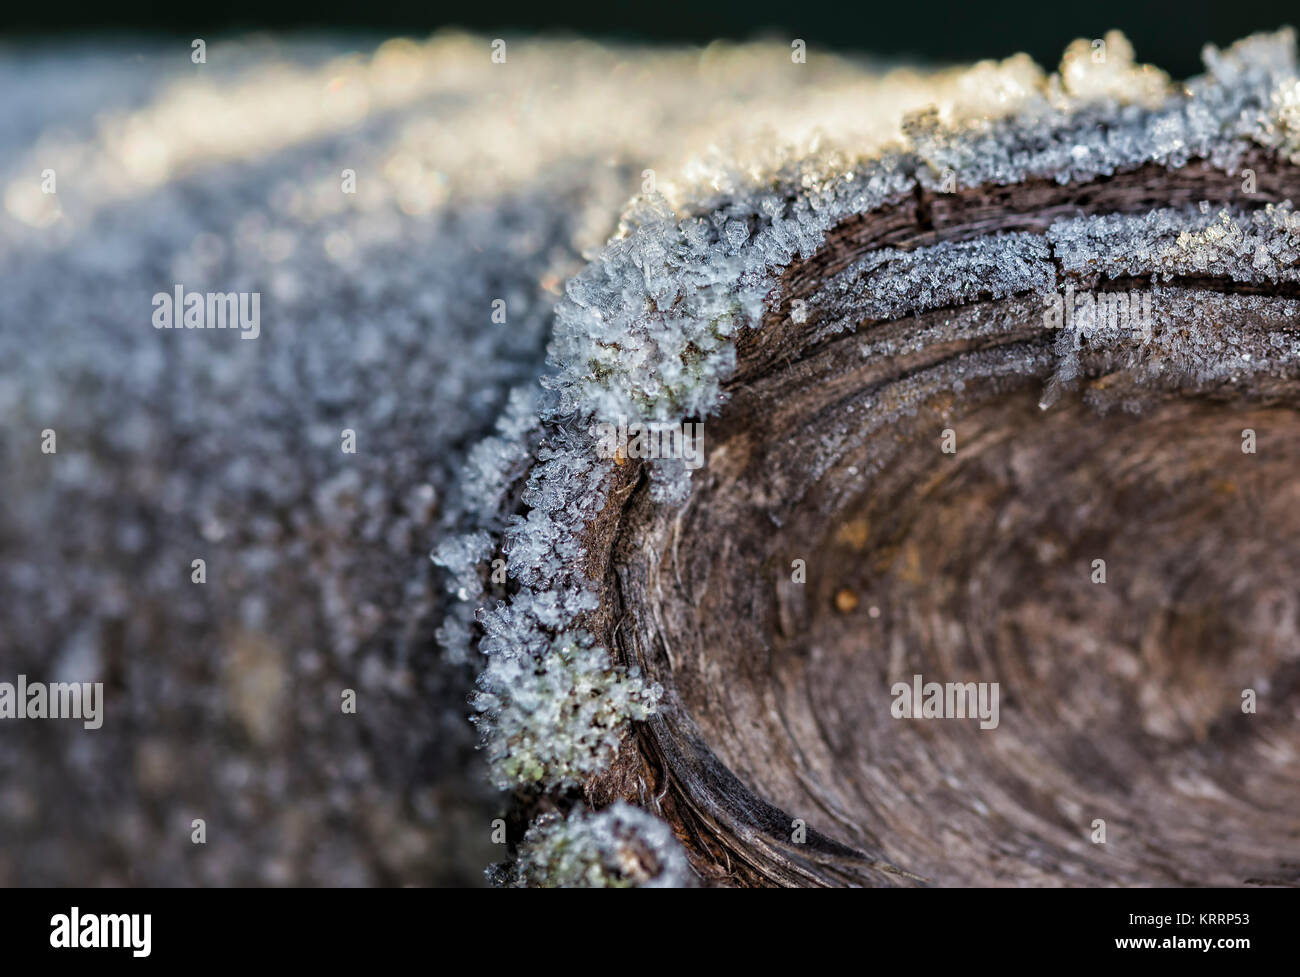 Natural ice photographed on wood after a cold night. - Stock Image